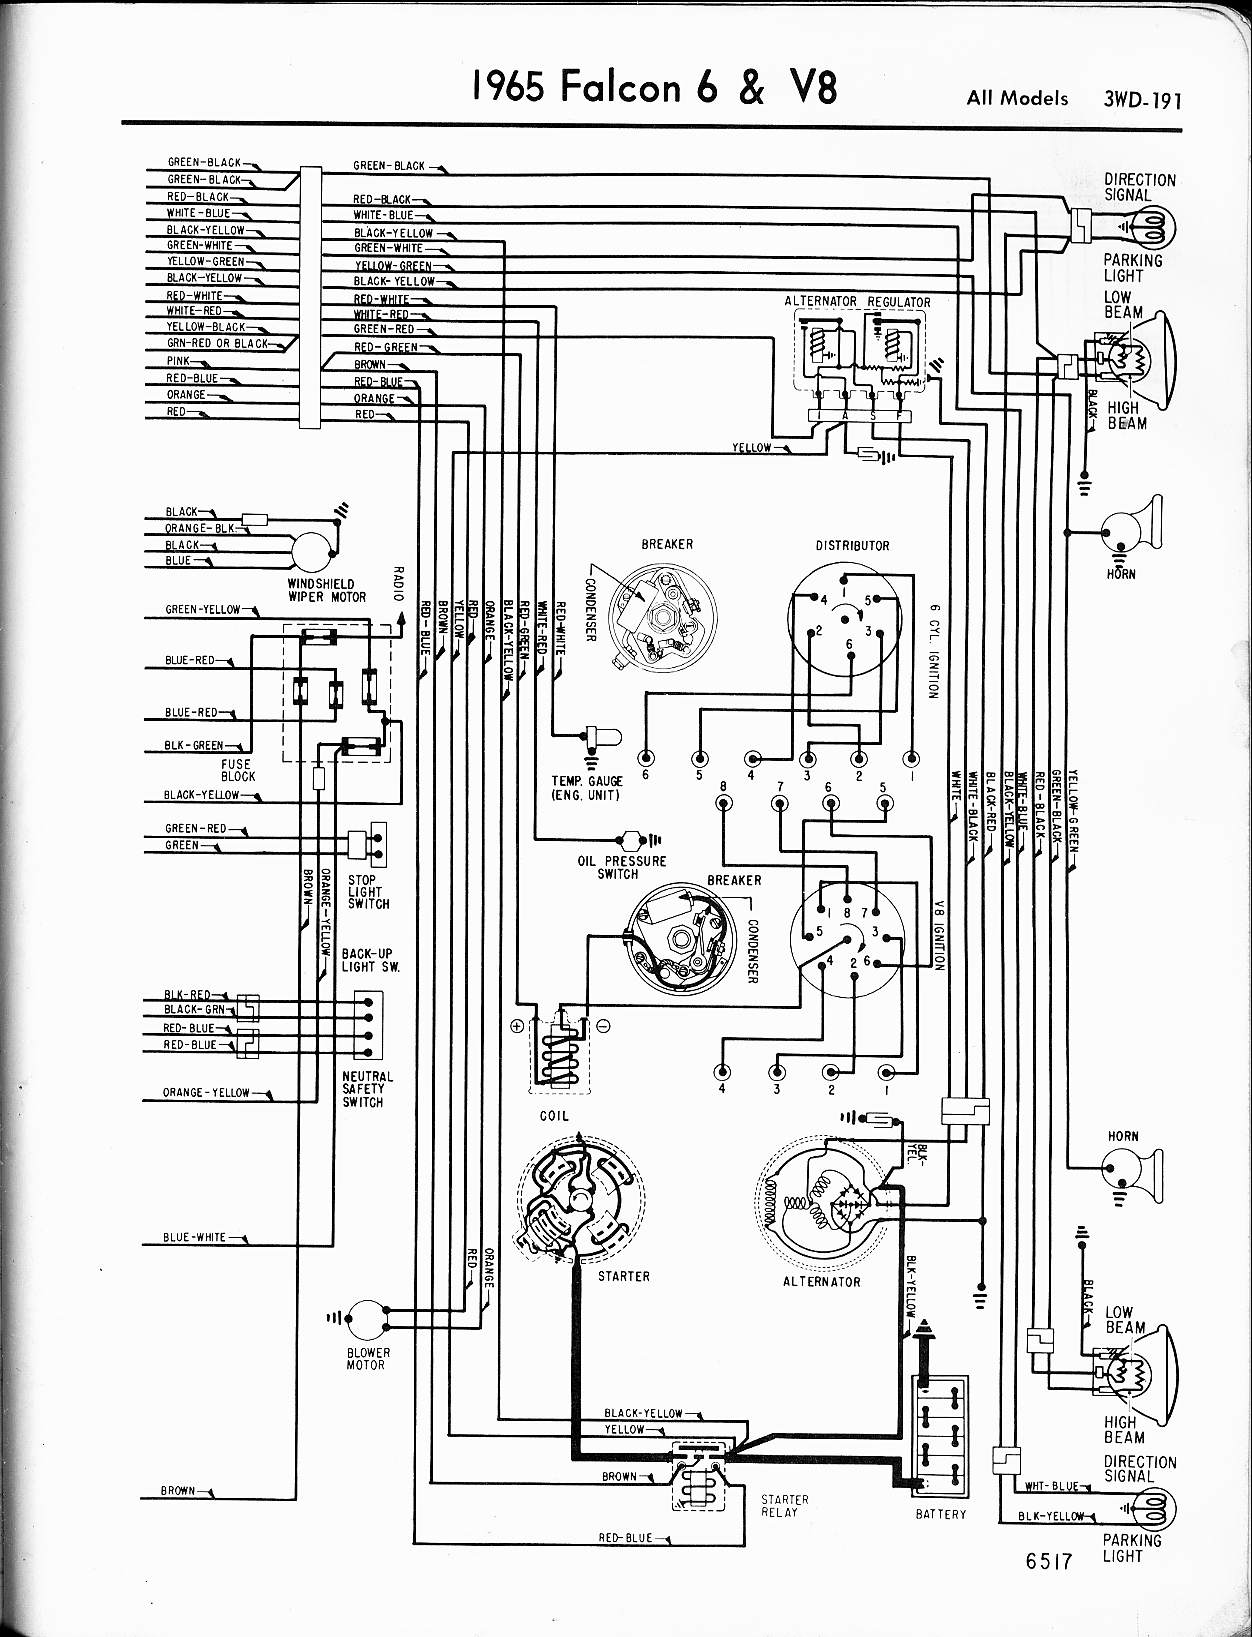 65 ford charge controller wiring diagram 1 wiring diagram sourcewiring diagram for 1965 ford fairlane wiring diagram ed